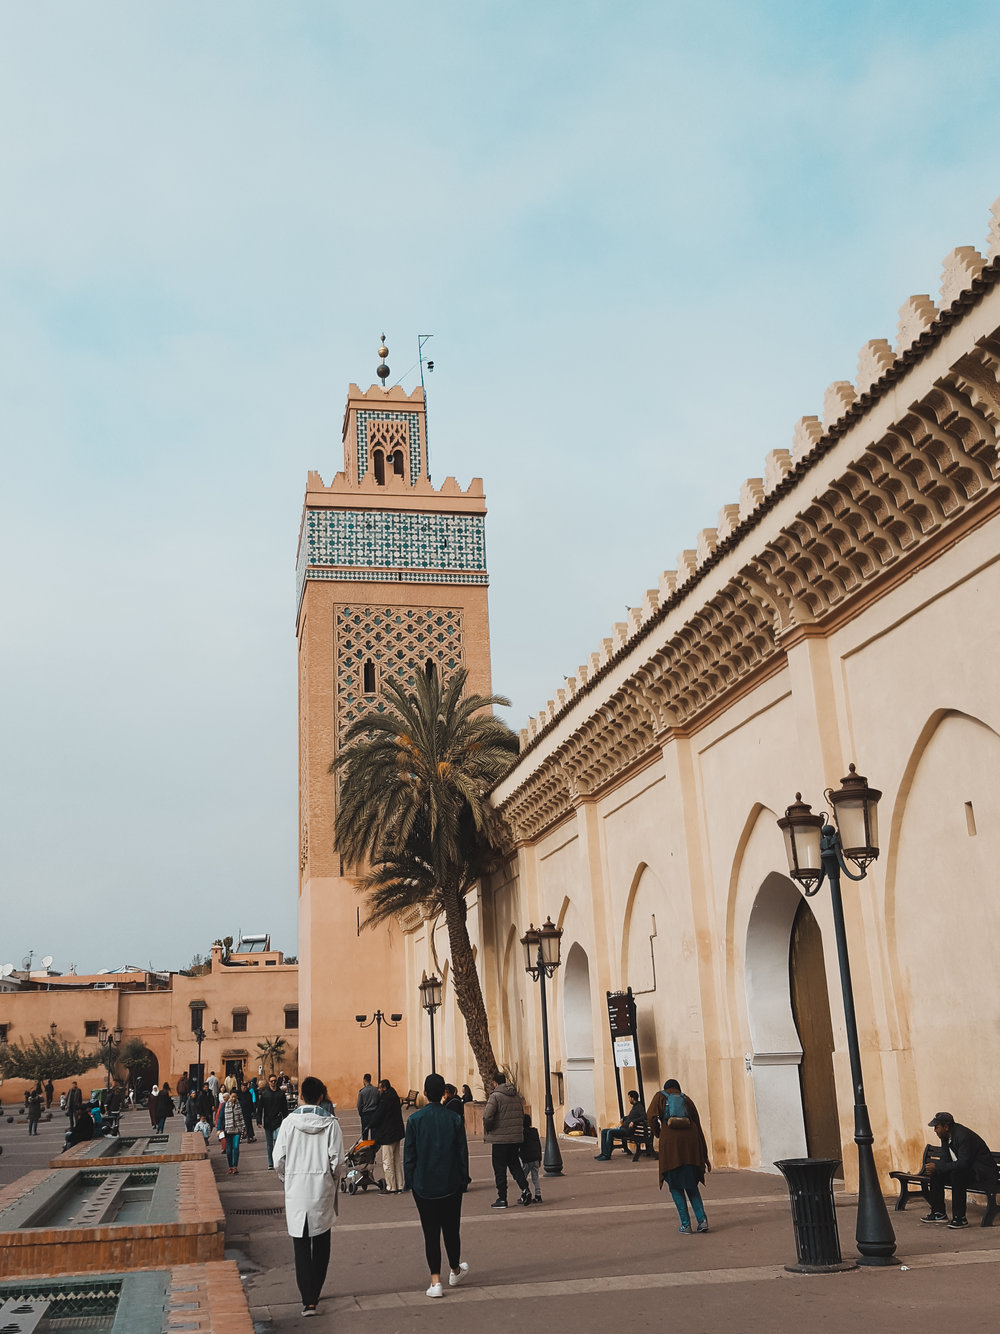 Ended our Morocco trip where we started - in Marrakech